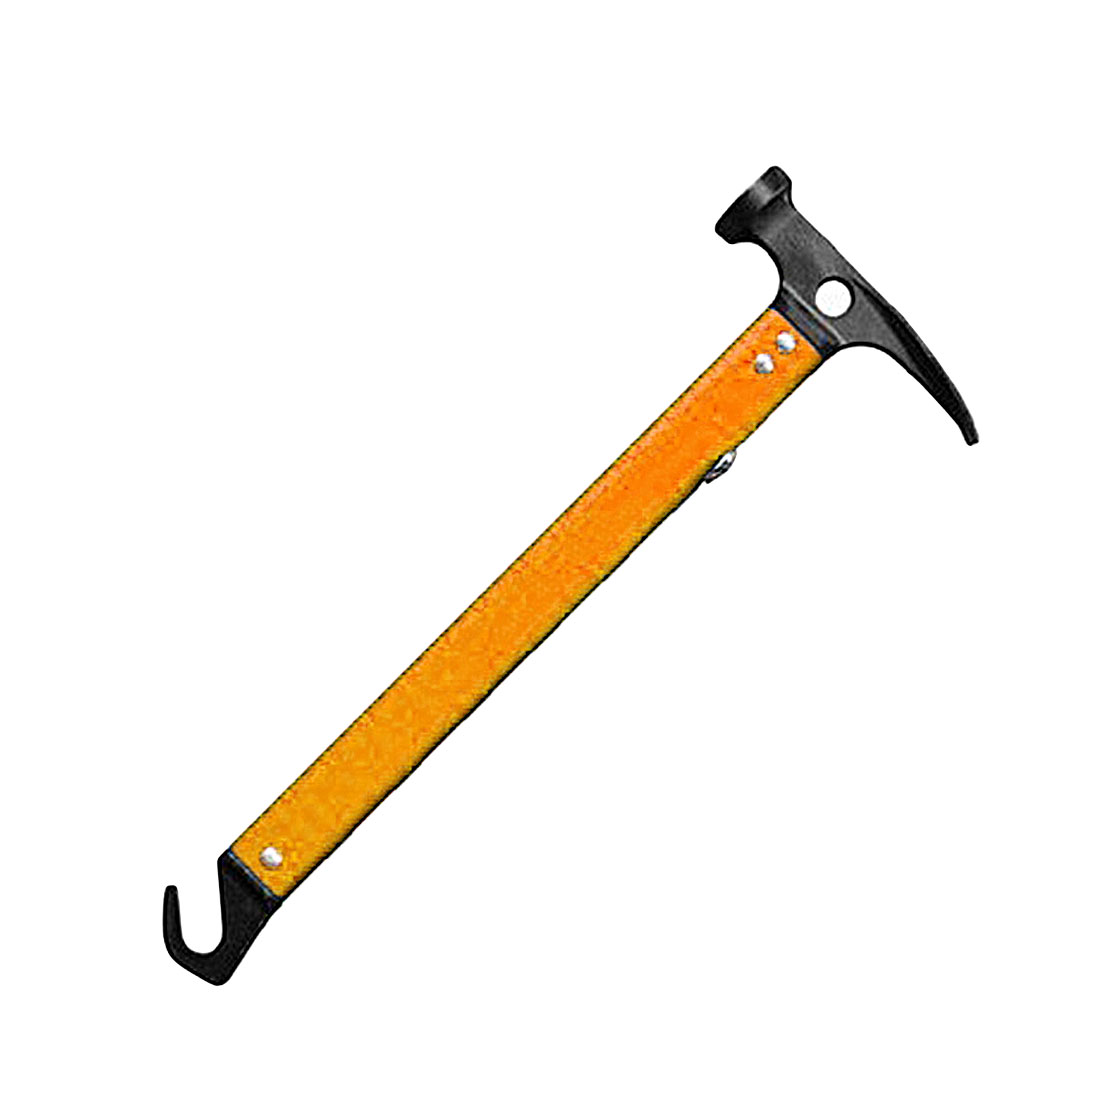 Aluminum Steel Camping Hammer Axe Ultra Light <font><b>tent</b></font> nail Puller Climbing Shovel Outdoor multi-function <font><b>tent</b></font> <font><b>peg</b></font> accessories tool image